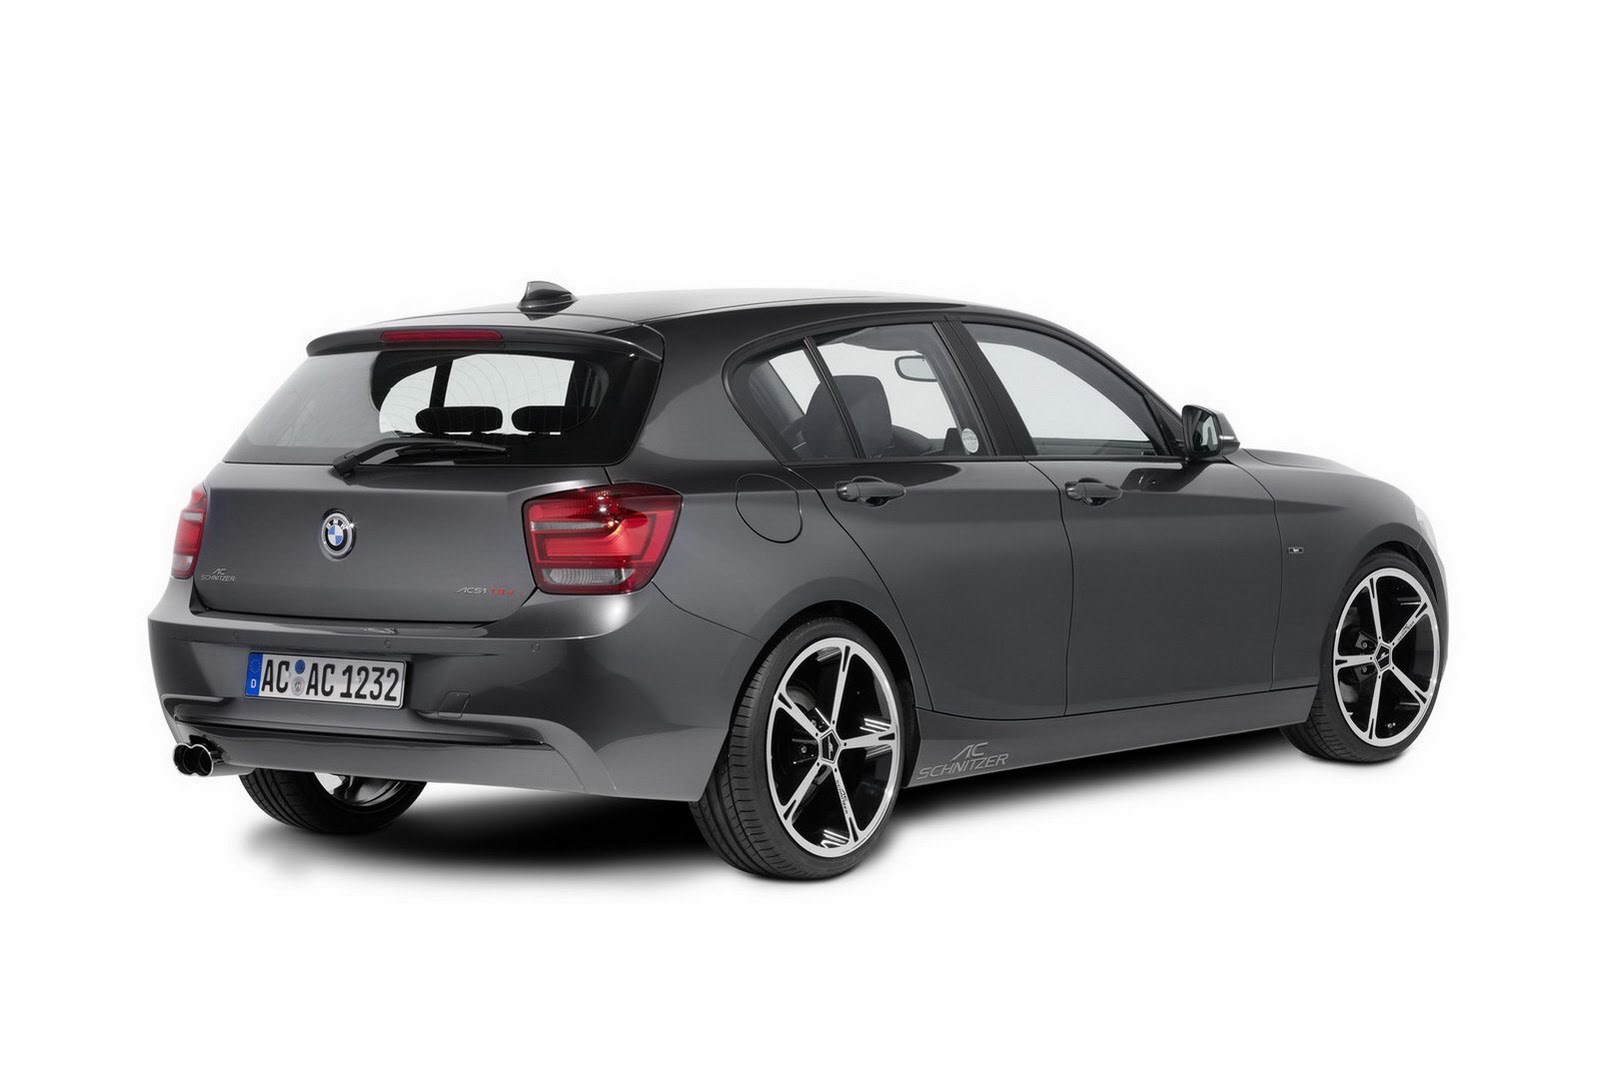 ac schnitzer bmw 1 series f20 tuning 1 tuning. Black Bedroom Furniture Sets. Home Design Ideas